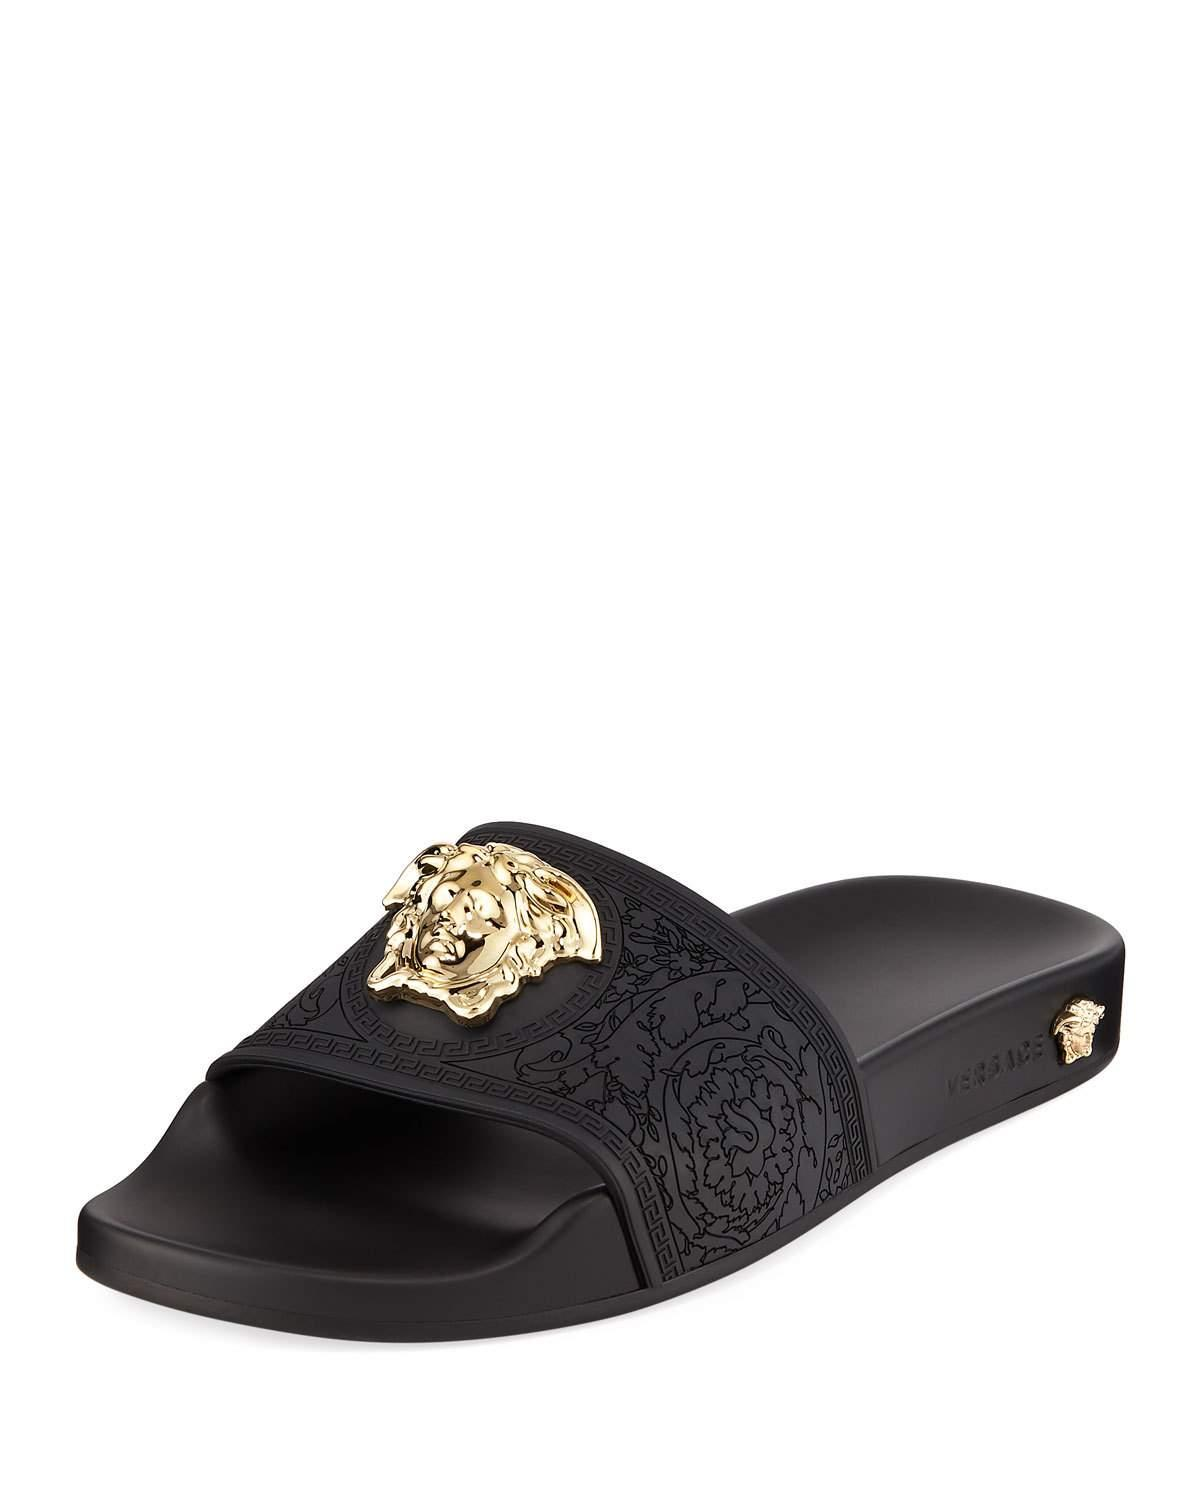 6850bfb39 Versace Palazzo Medusa Pool Slide Sandals In D41 Black